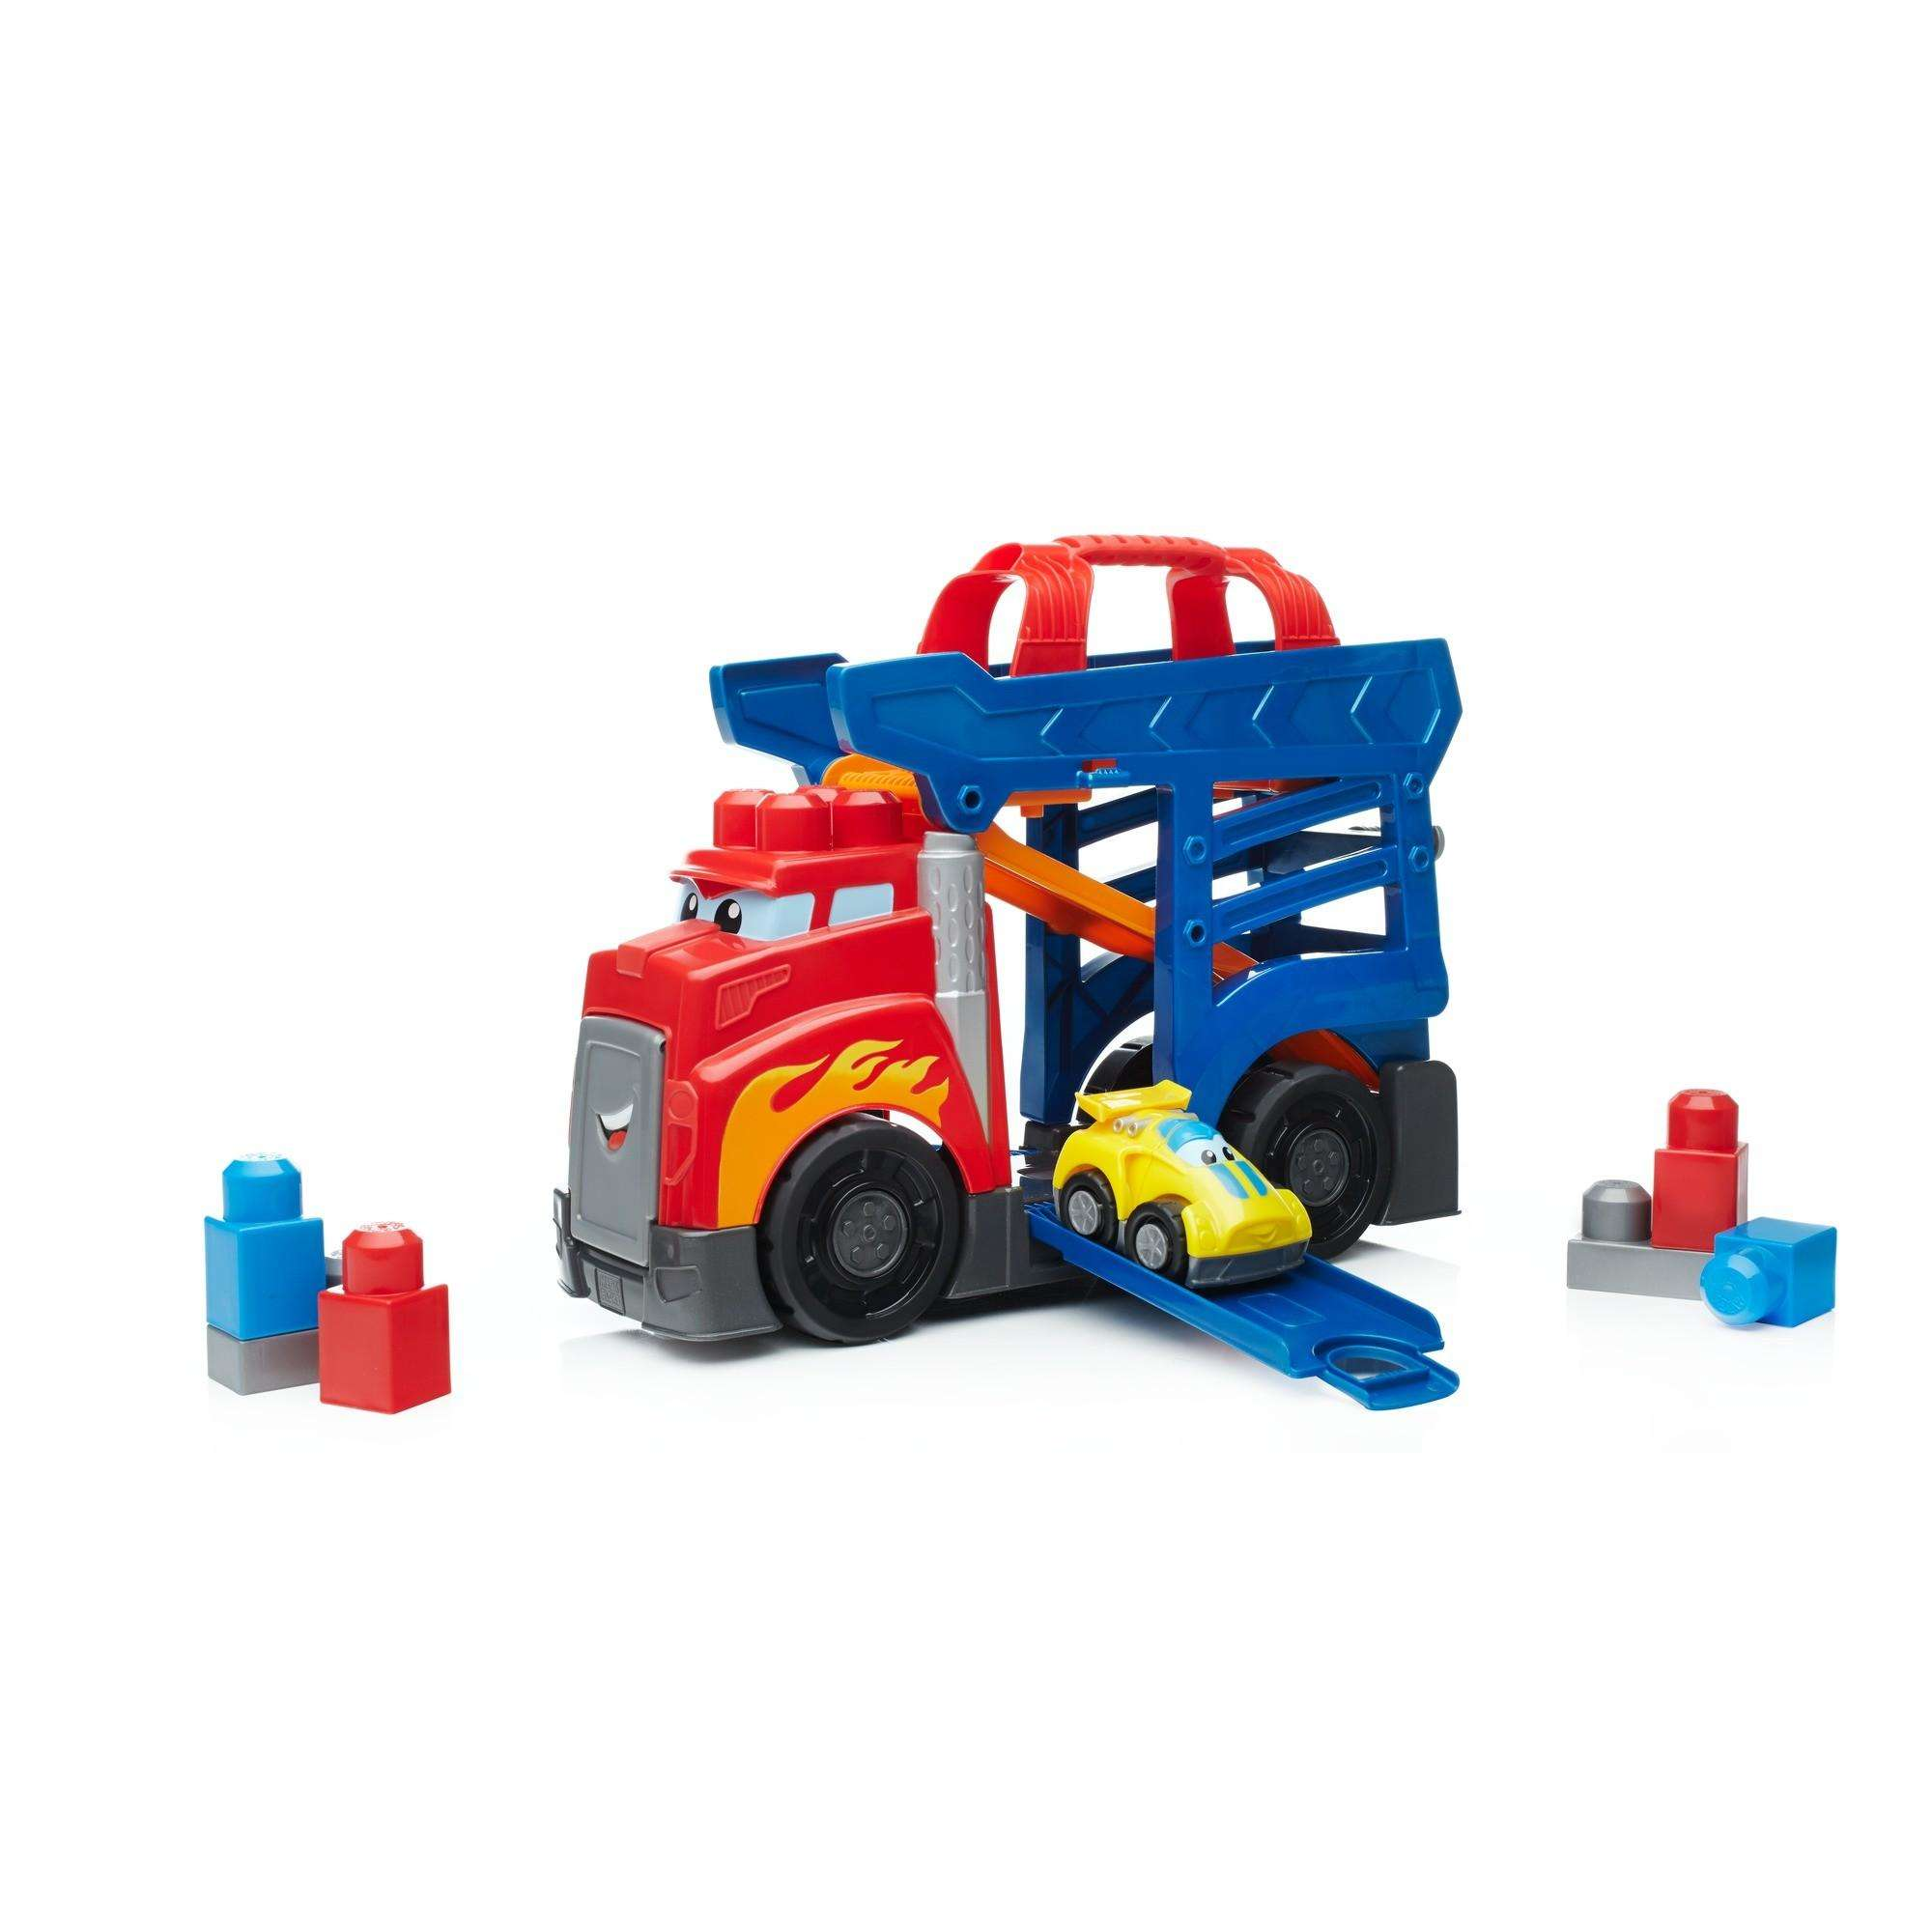 Mega Bloks First Builders Fast Tracks Racing Rig by Mattel